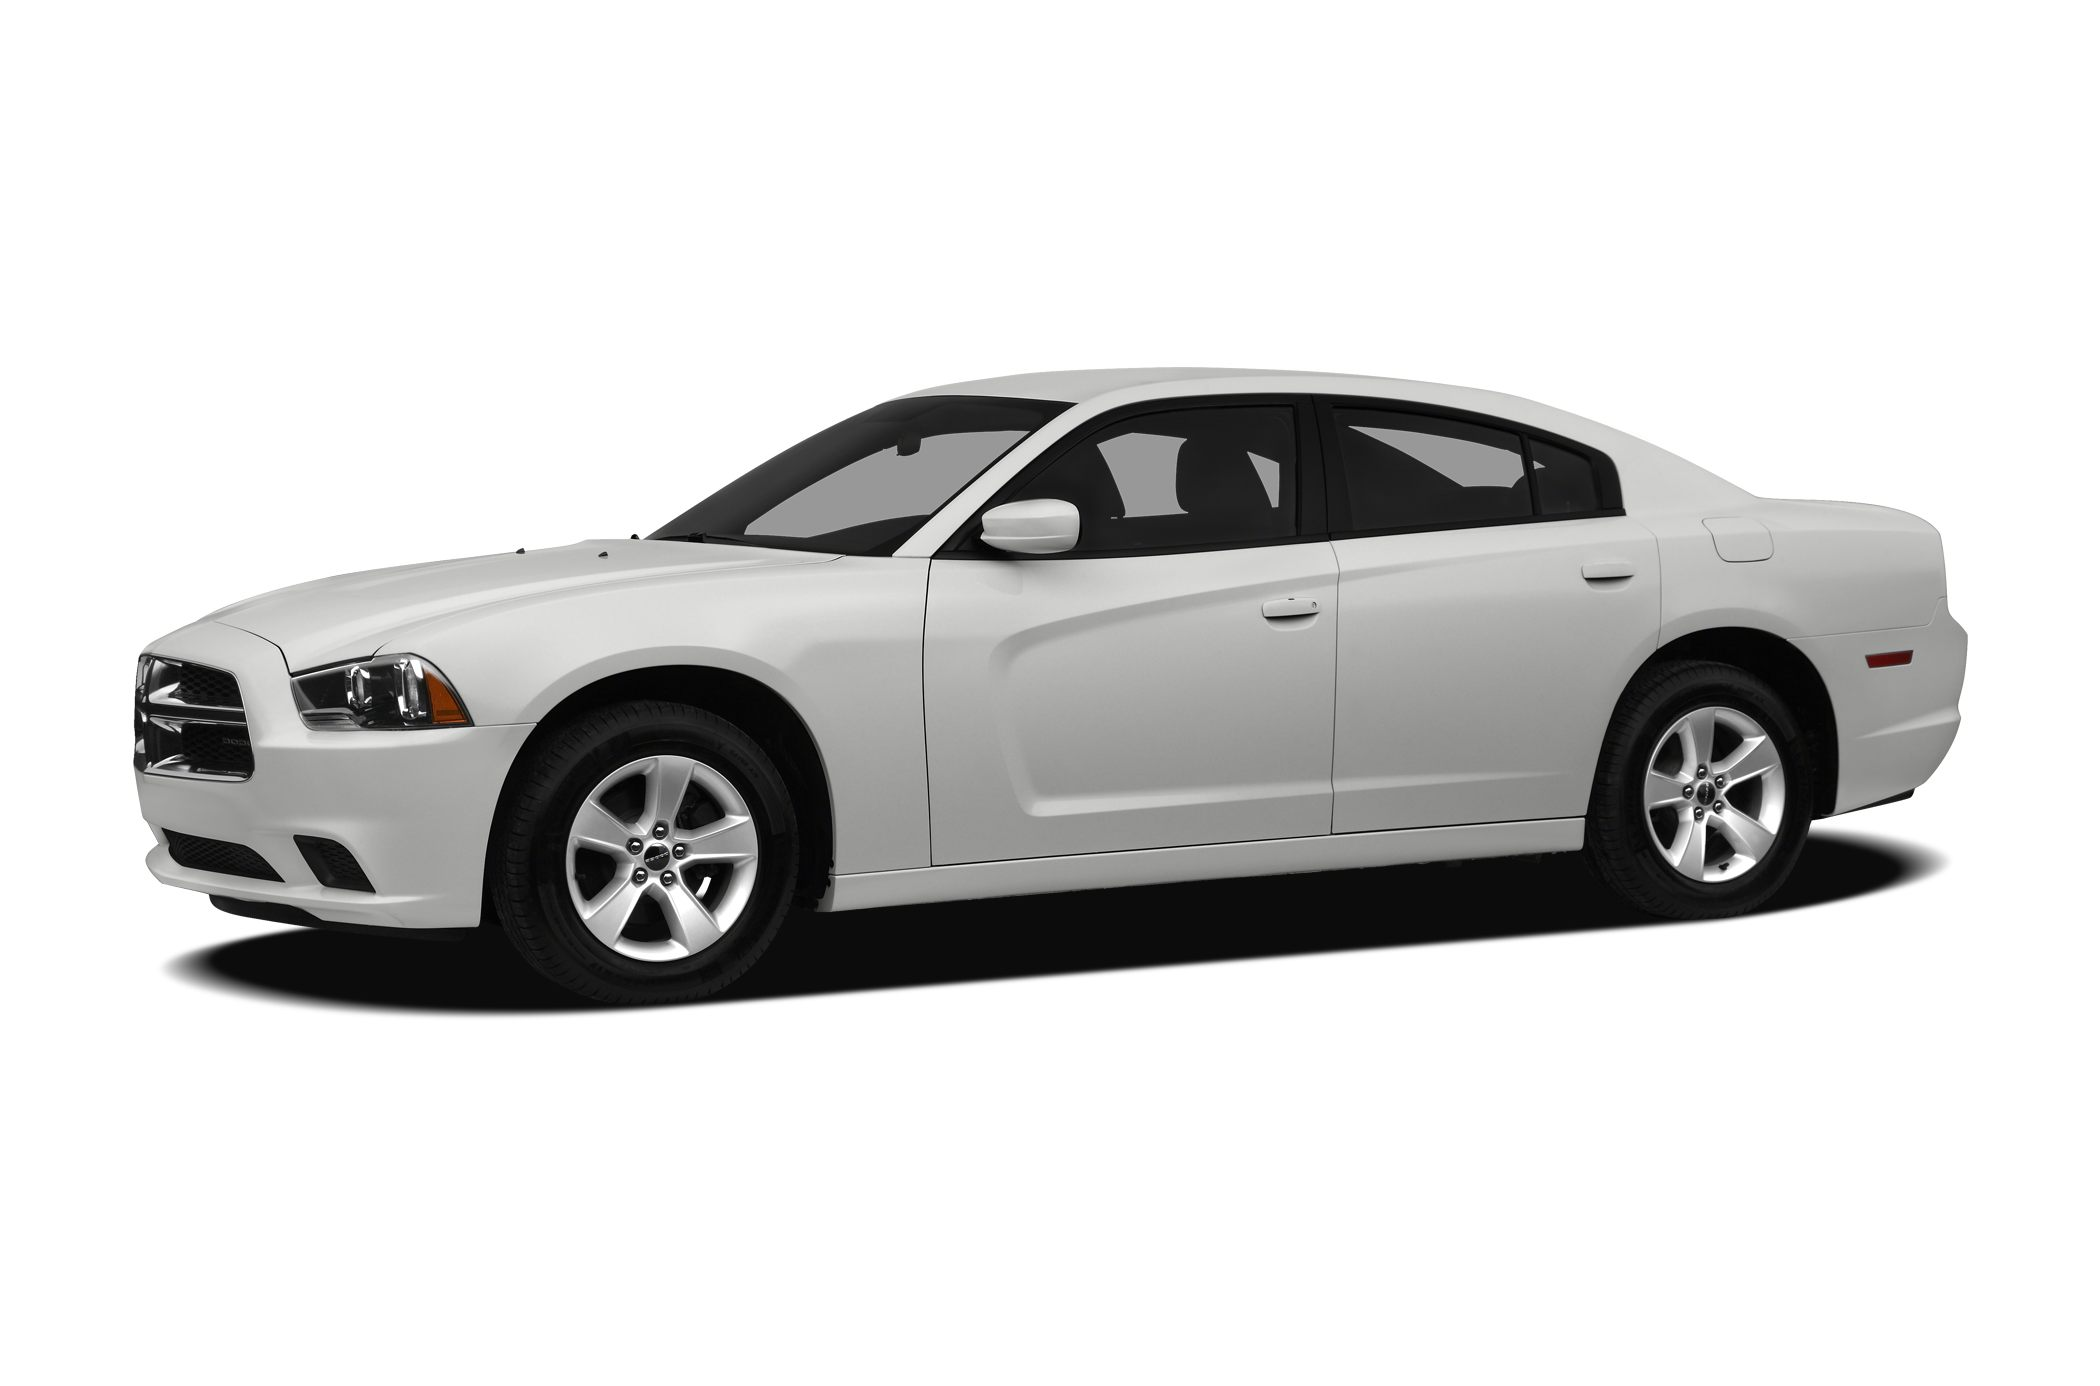 2012 Dodge Charger SE This 2012 Dodge Charger 4dr Sdn SE RWD is proudly offered by Lake Keowee Chr